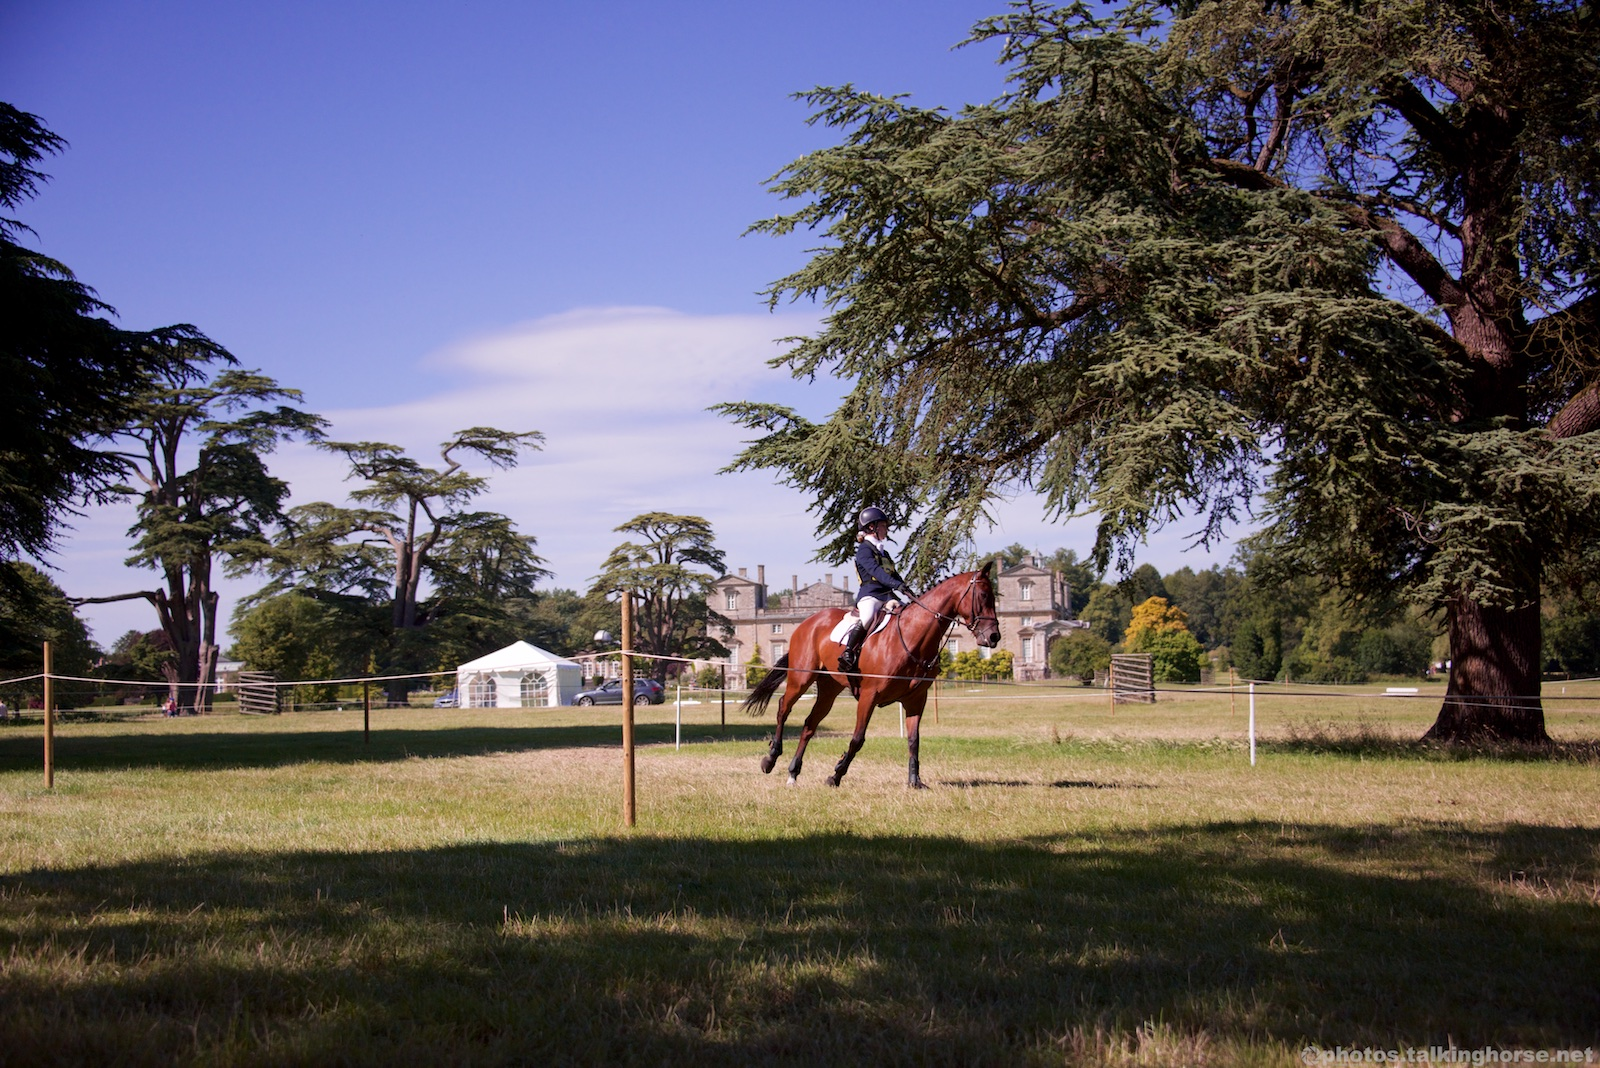 The Picturesque Surroundings Of Wilton House